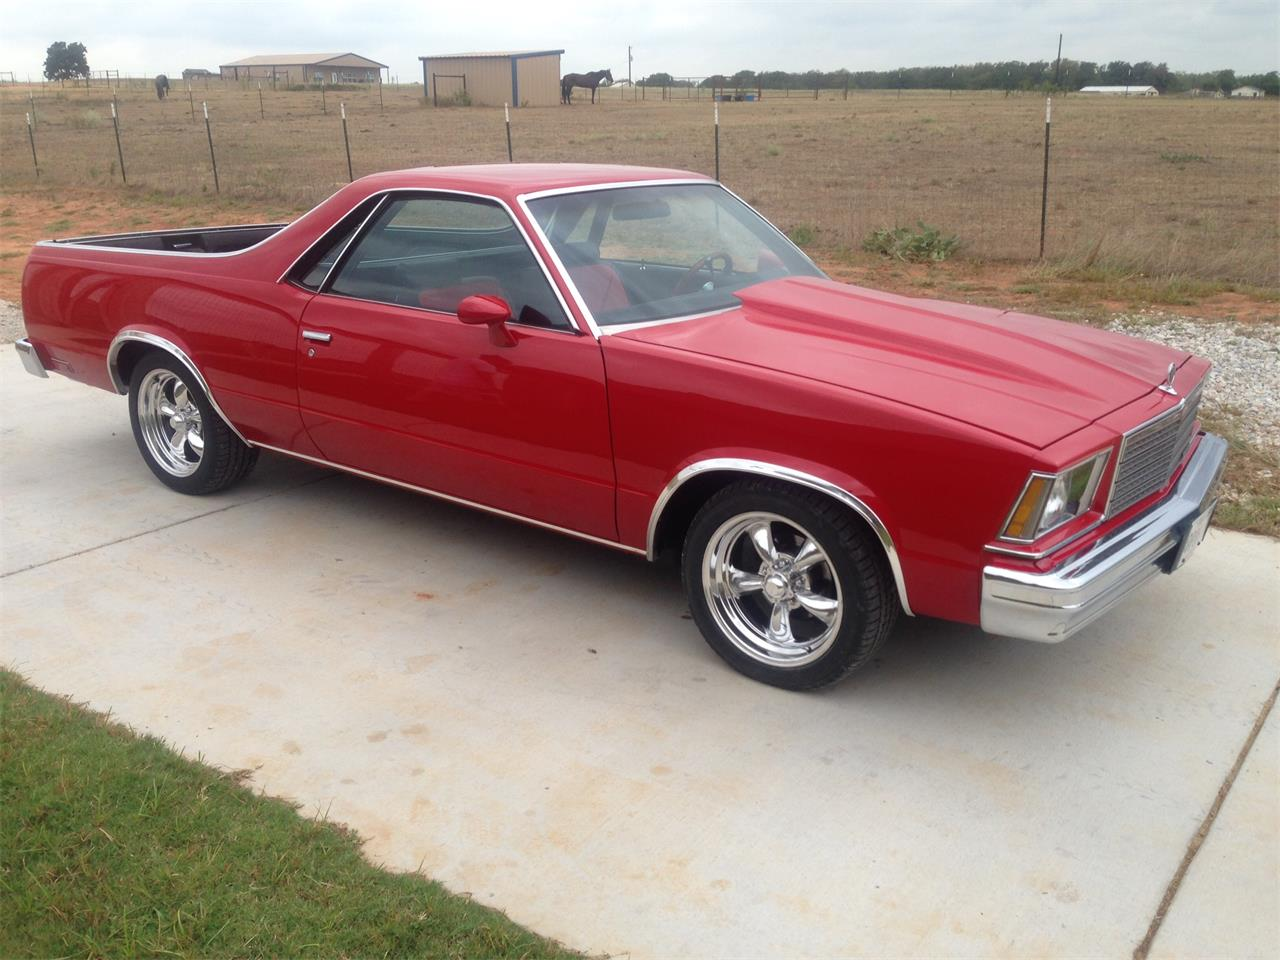 Large Picture of 1979 Chevrolet El Camino located in Texas - $17,500.00 - PZT5